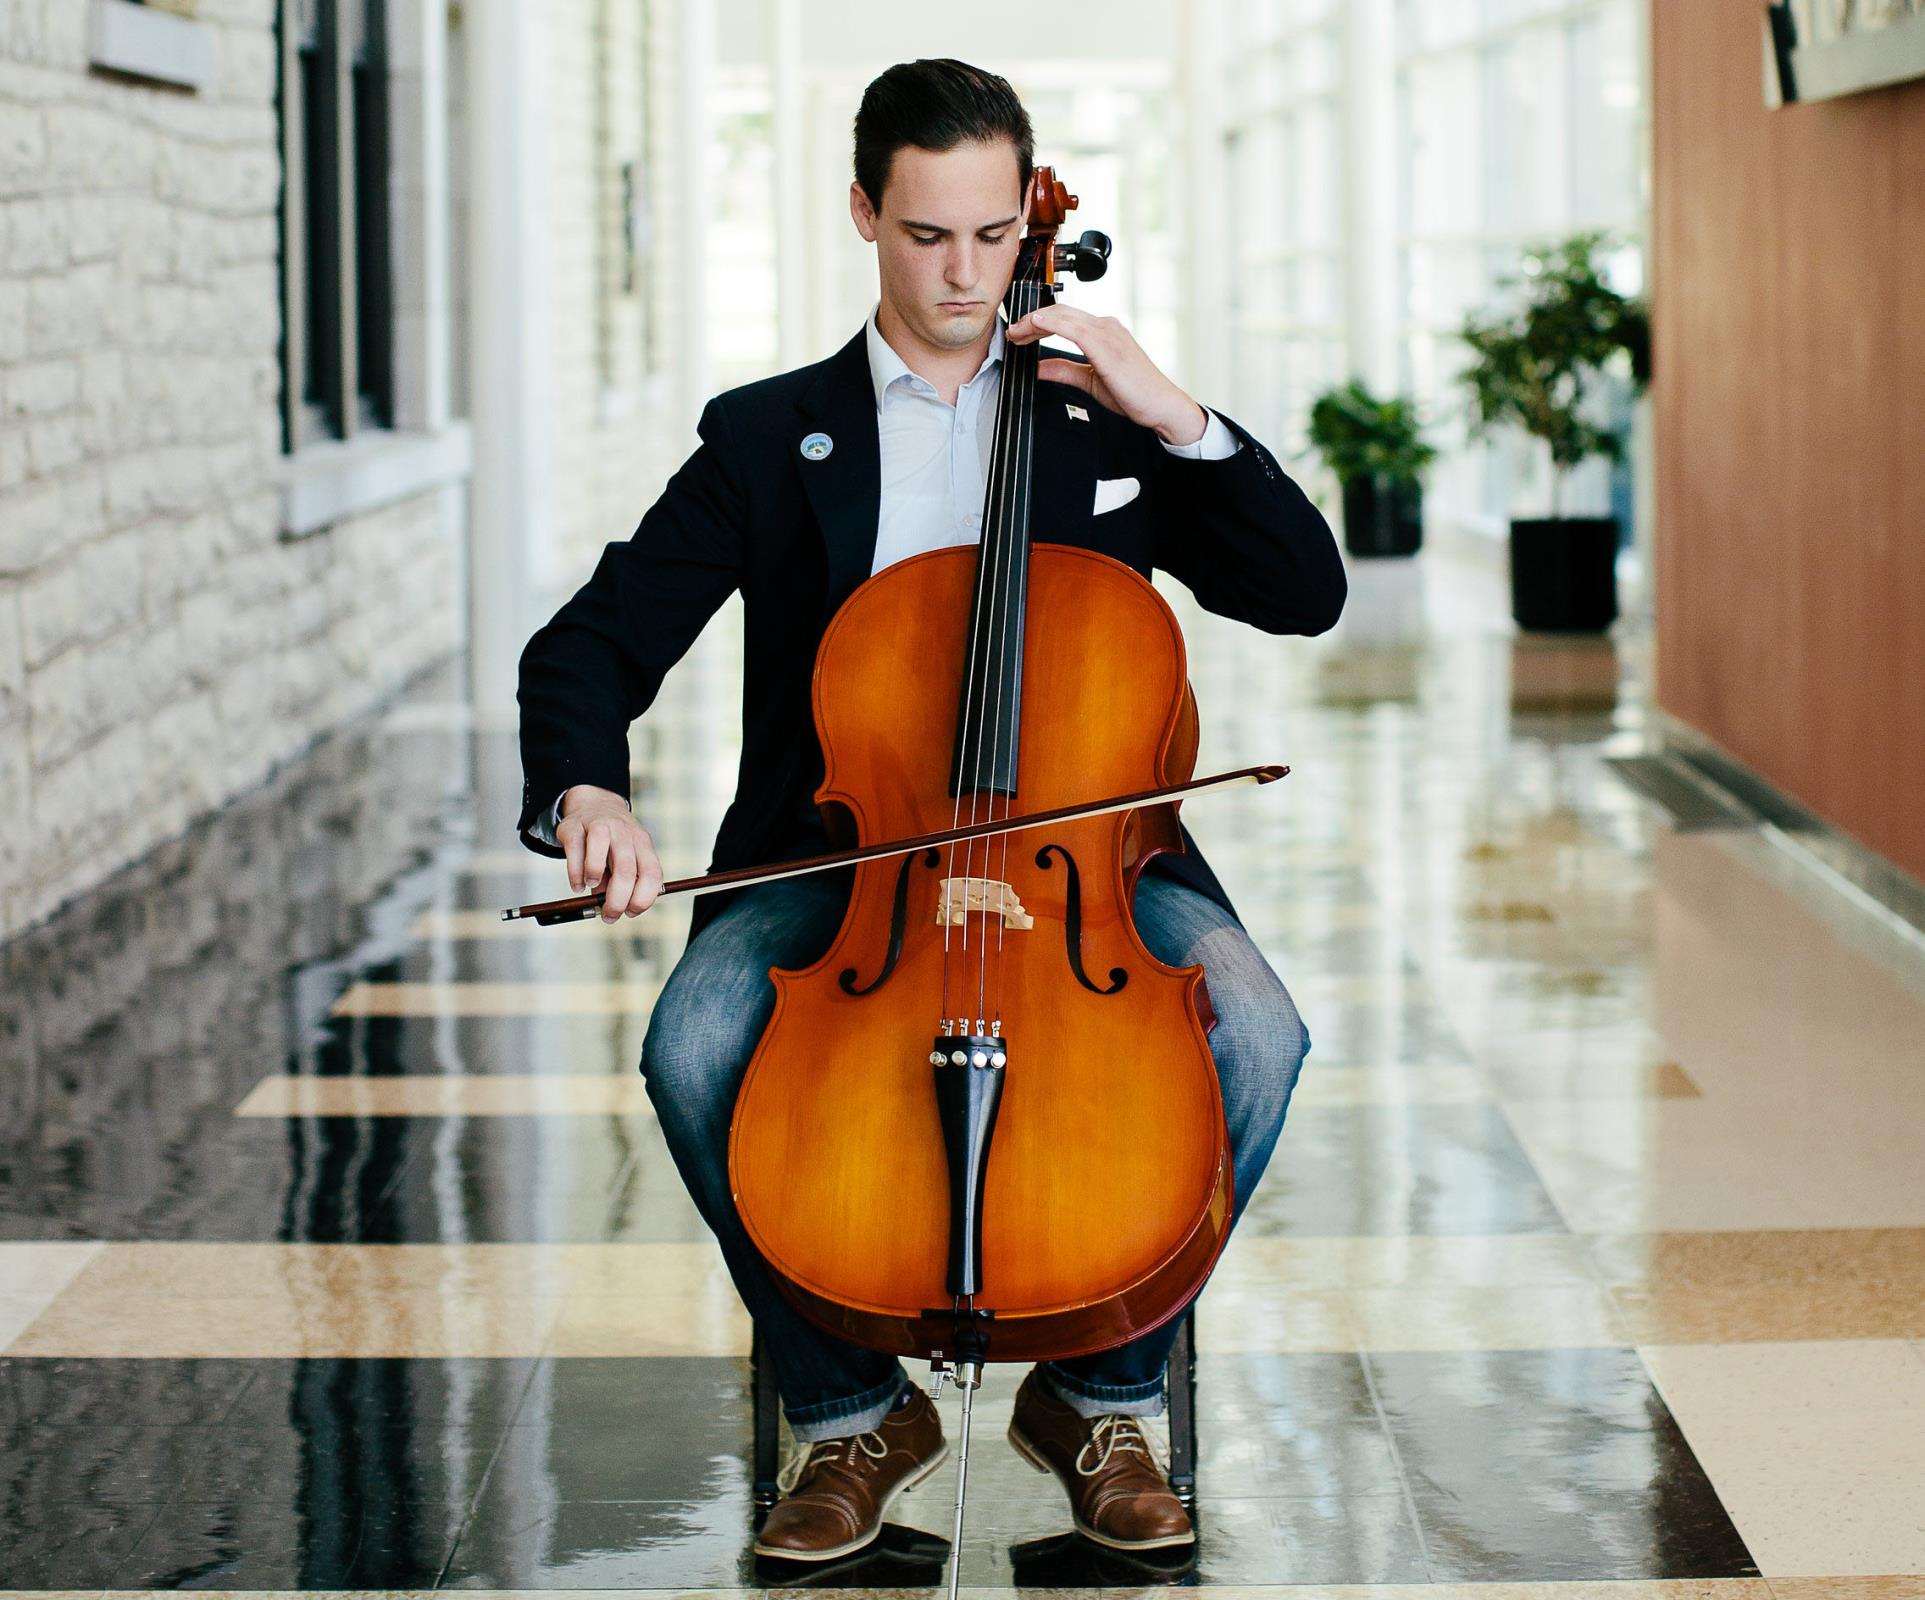 A student playing the cello